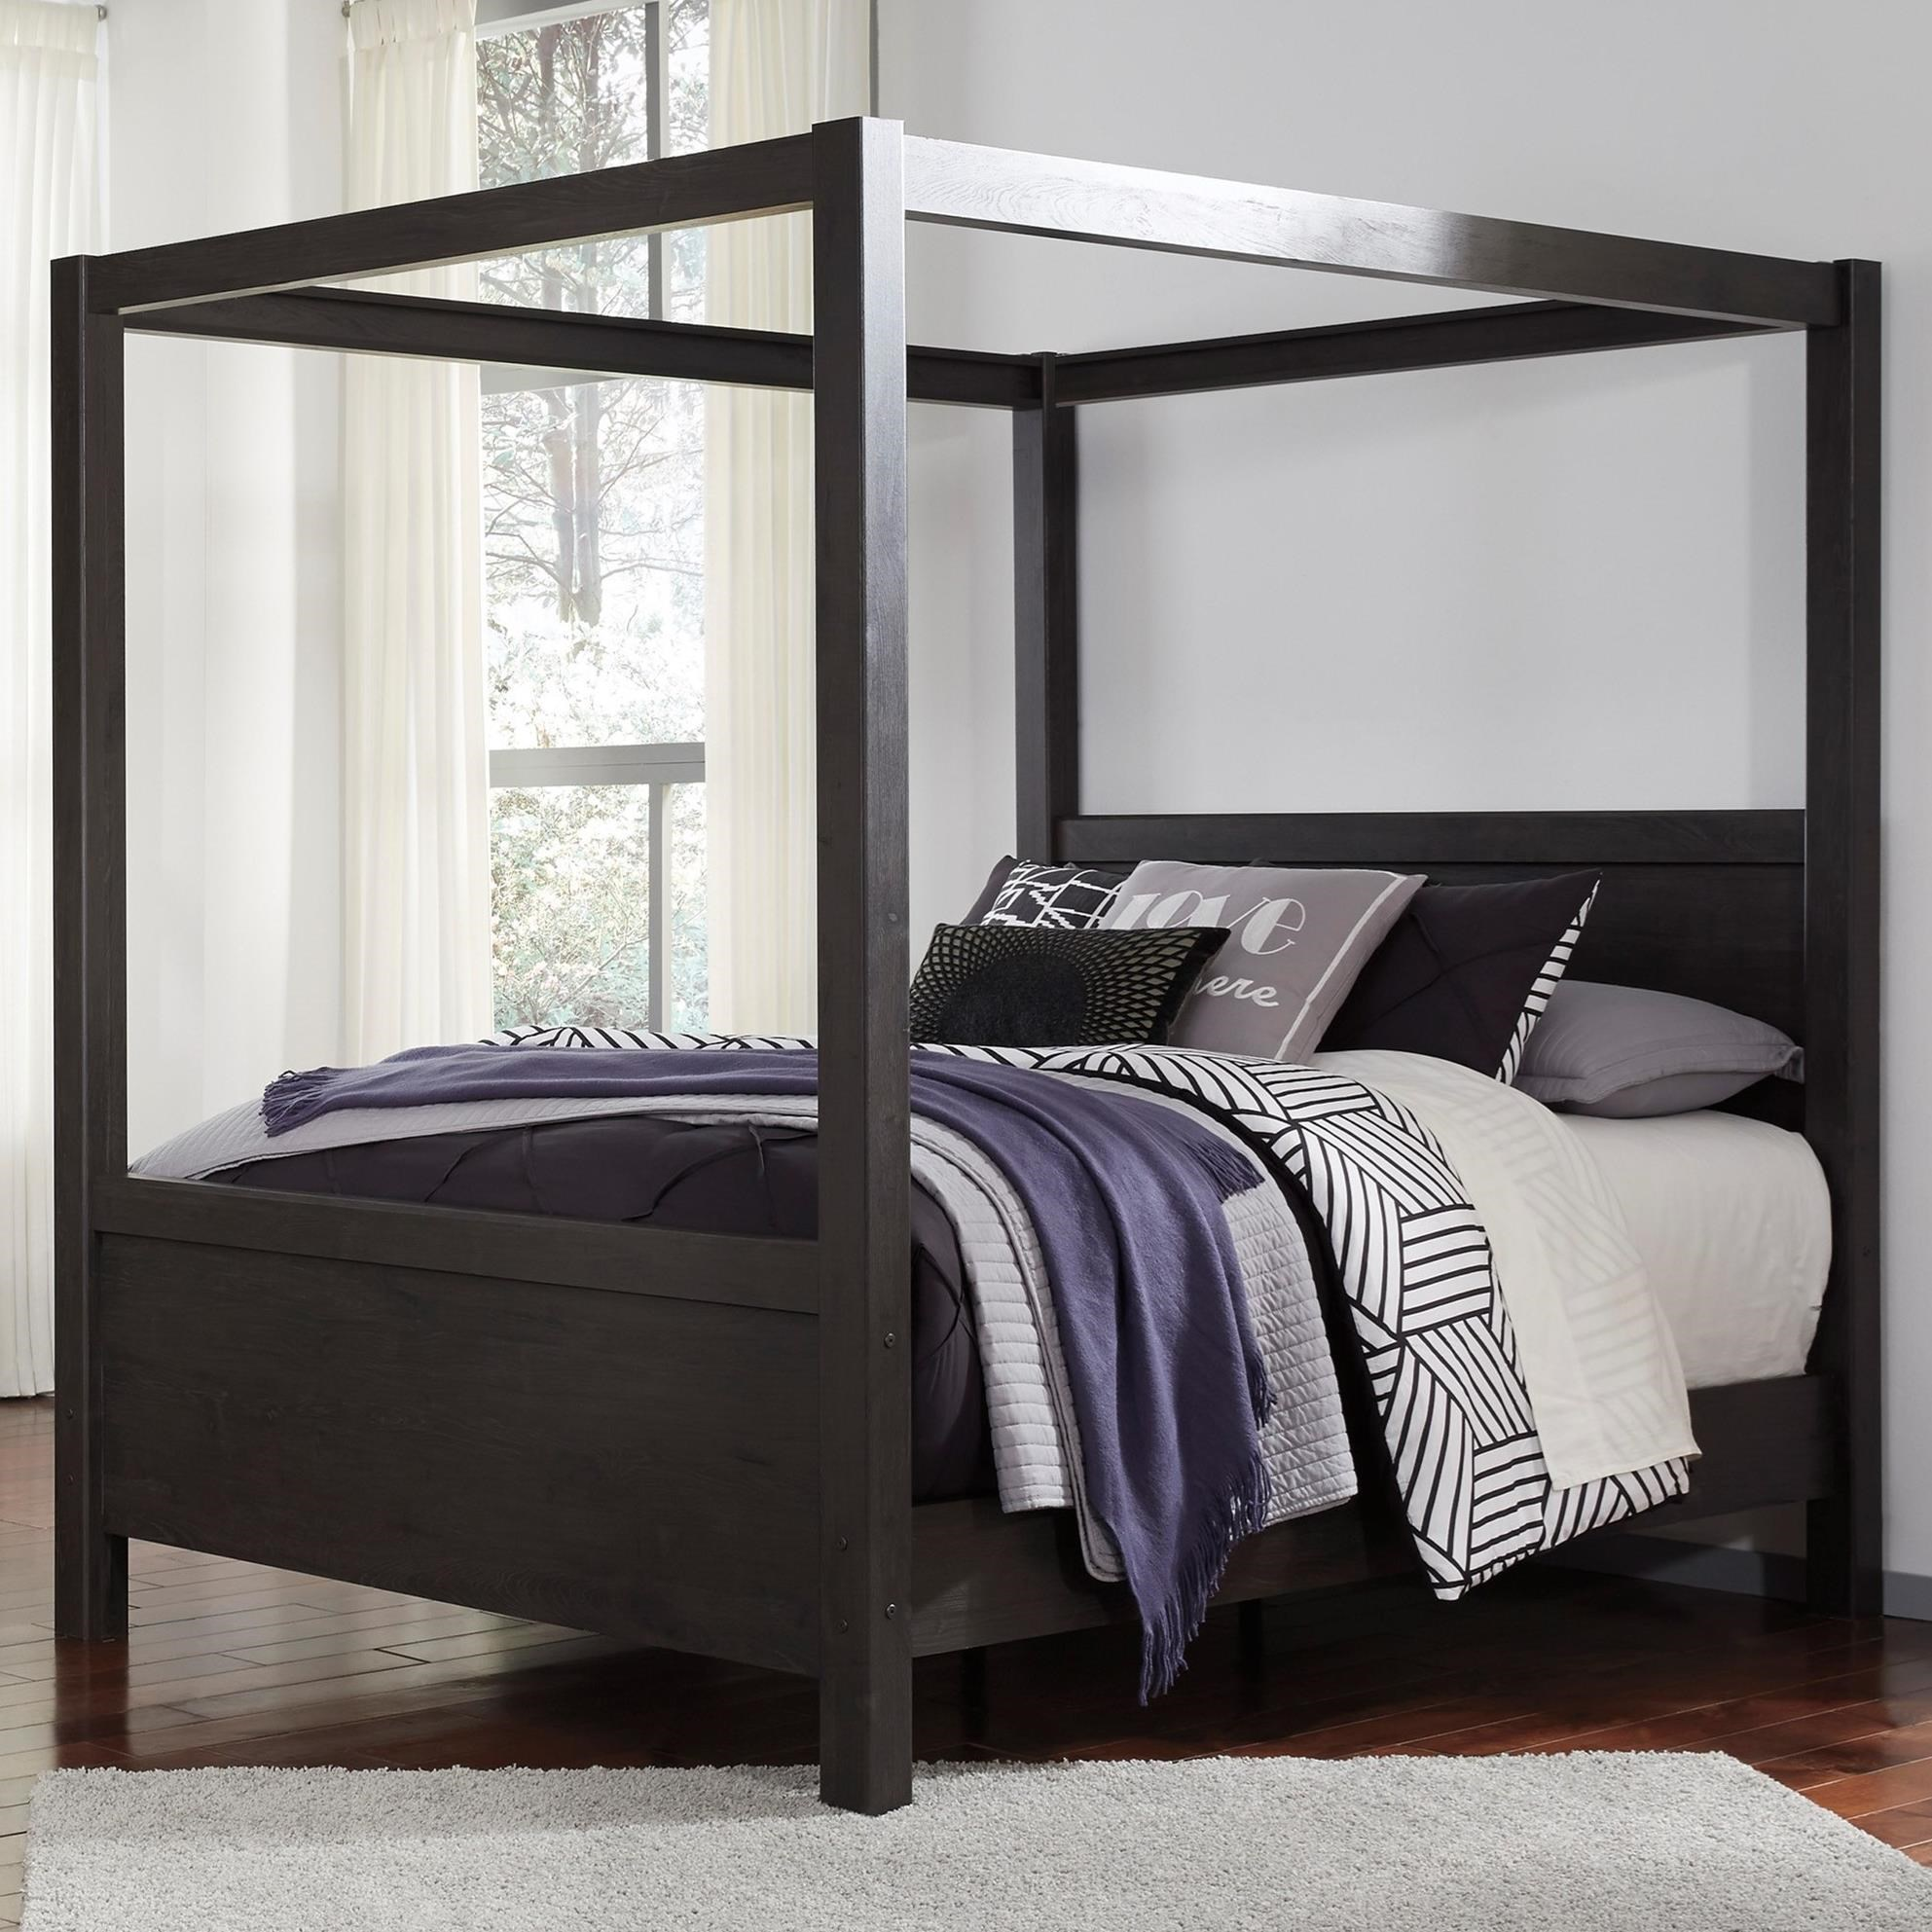 Signature Design by Ashley Daltori Contemporary Queen Canopy Bed in Dark Charcoal Finish | Royal Furniture | Canopy Beds  sc 1 st  Royal Furniture & Signature Design by Ashley Daltori Contemporary Queen Canopy Bed ...